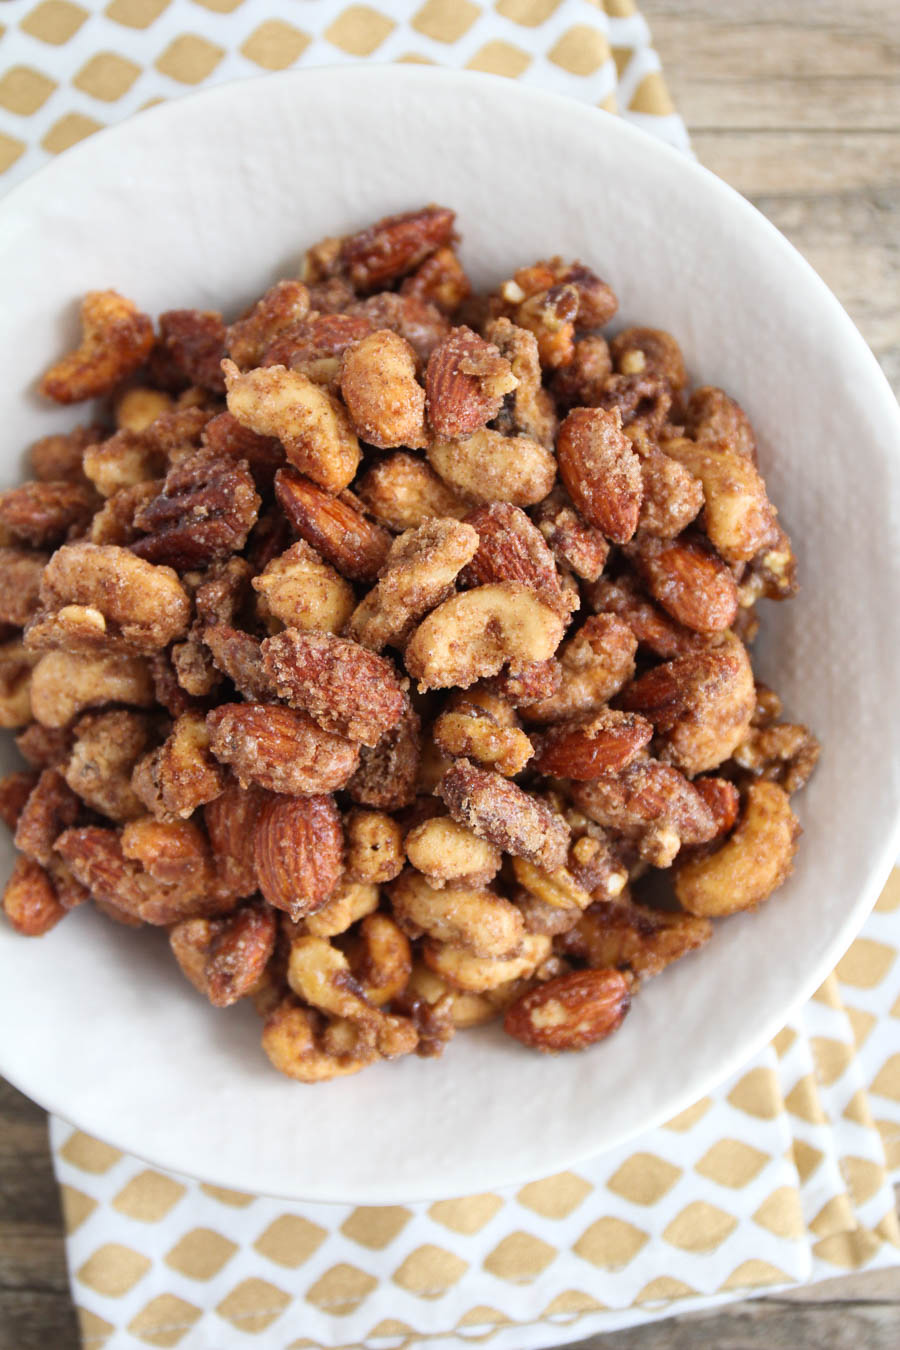 These candied nuts are so addicting and delicious, and incredibly easy to make!